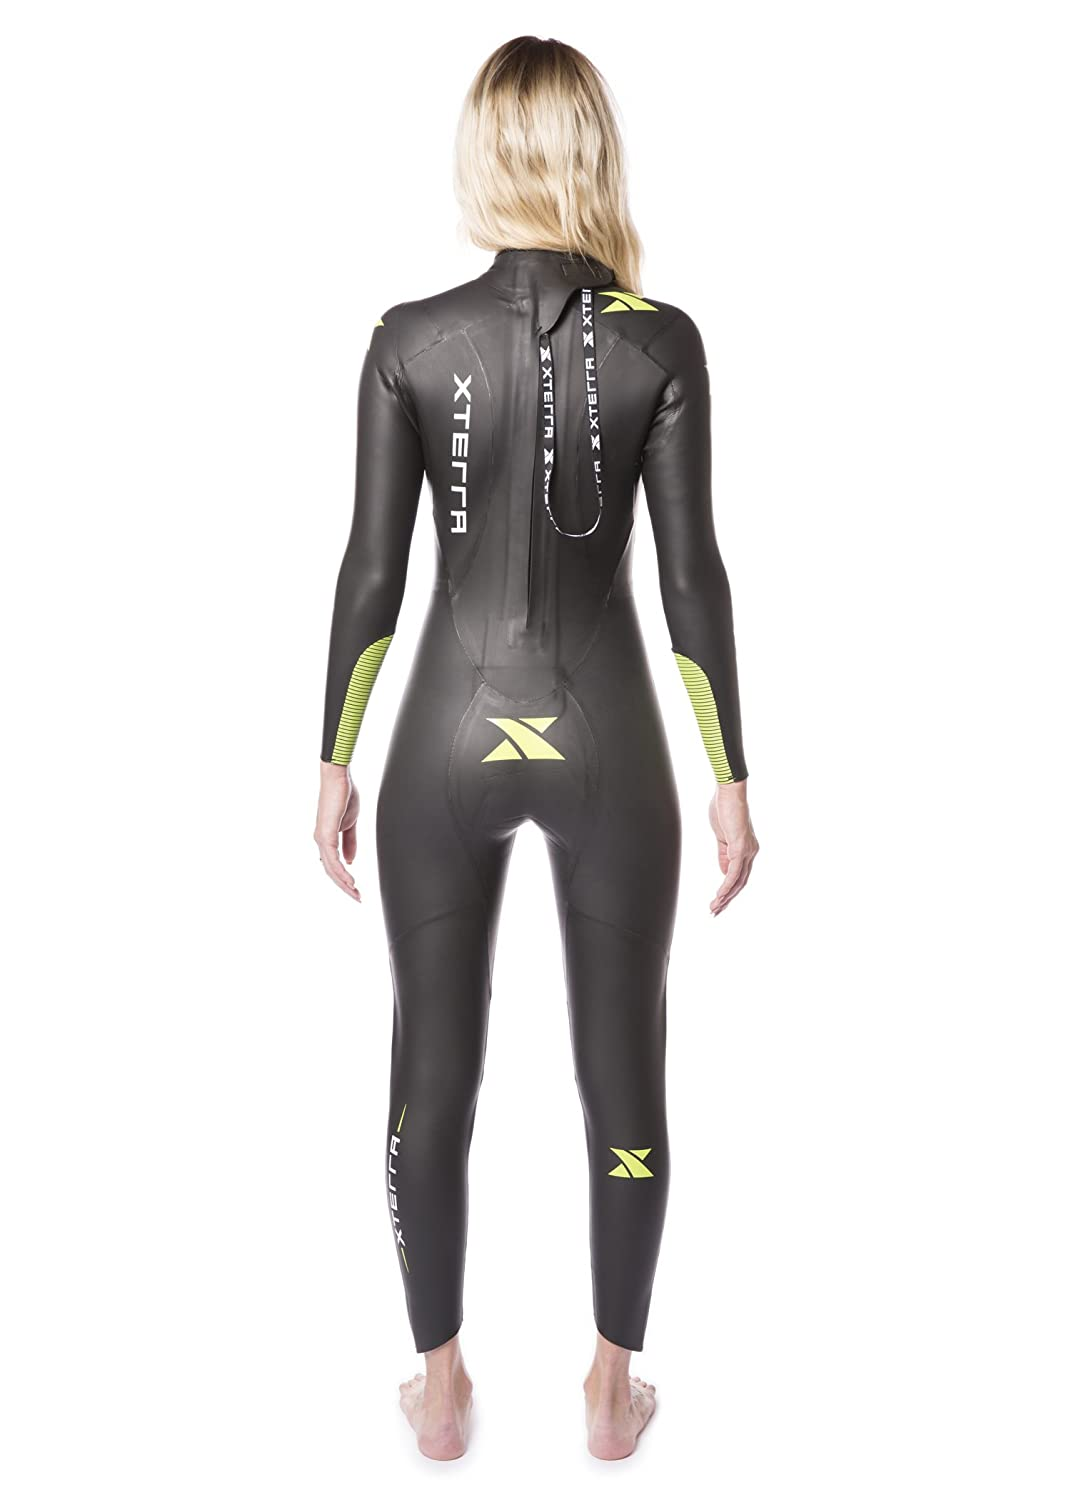 add99a4ca68cb Xterra Wetsuits - Women s Volt Triathlon Wetsuit - Full Body Neoprene Wet  Suit (3mm Thickness)